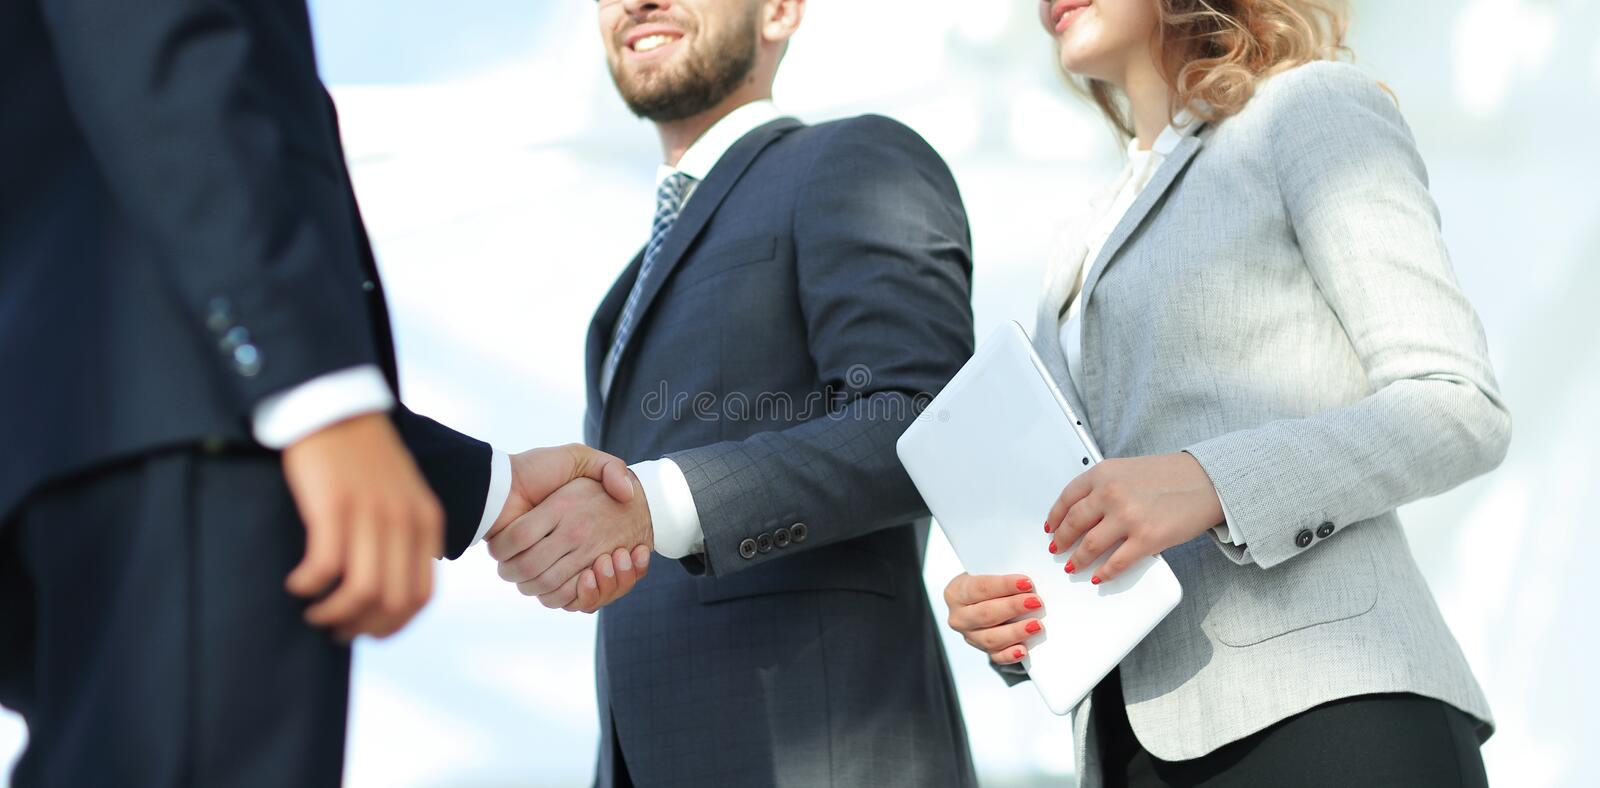 Successful business people handshake greeting deal concept. Close-up shot of businessmen shaking hands in the office stock photos